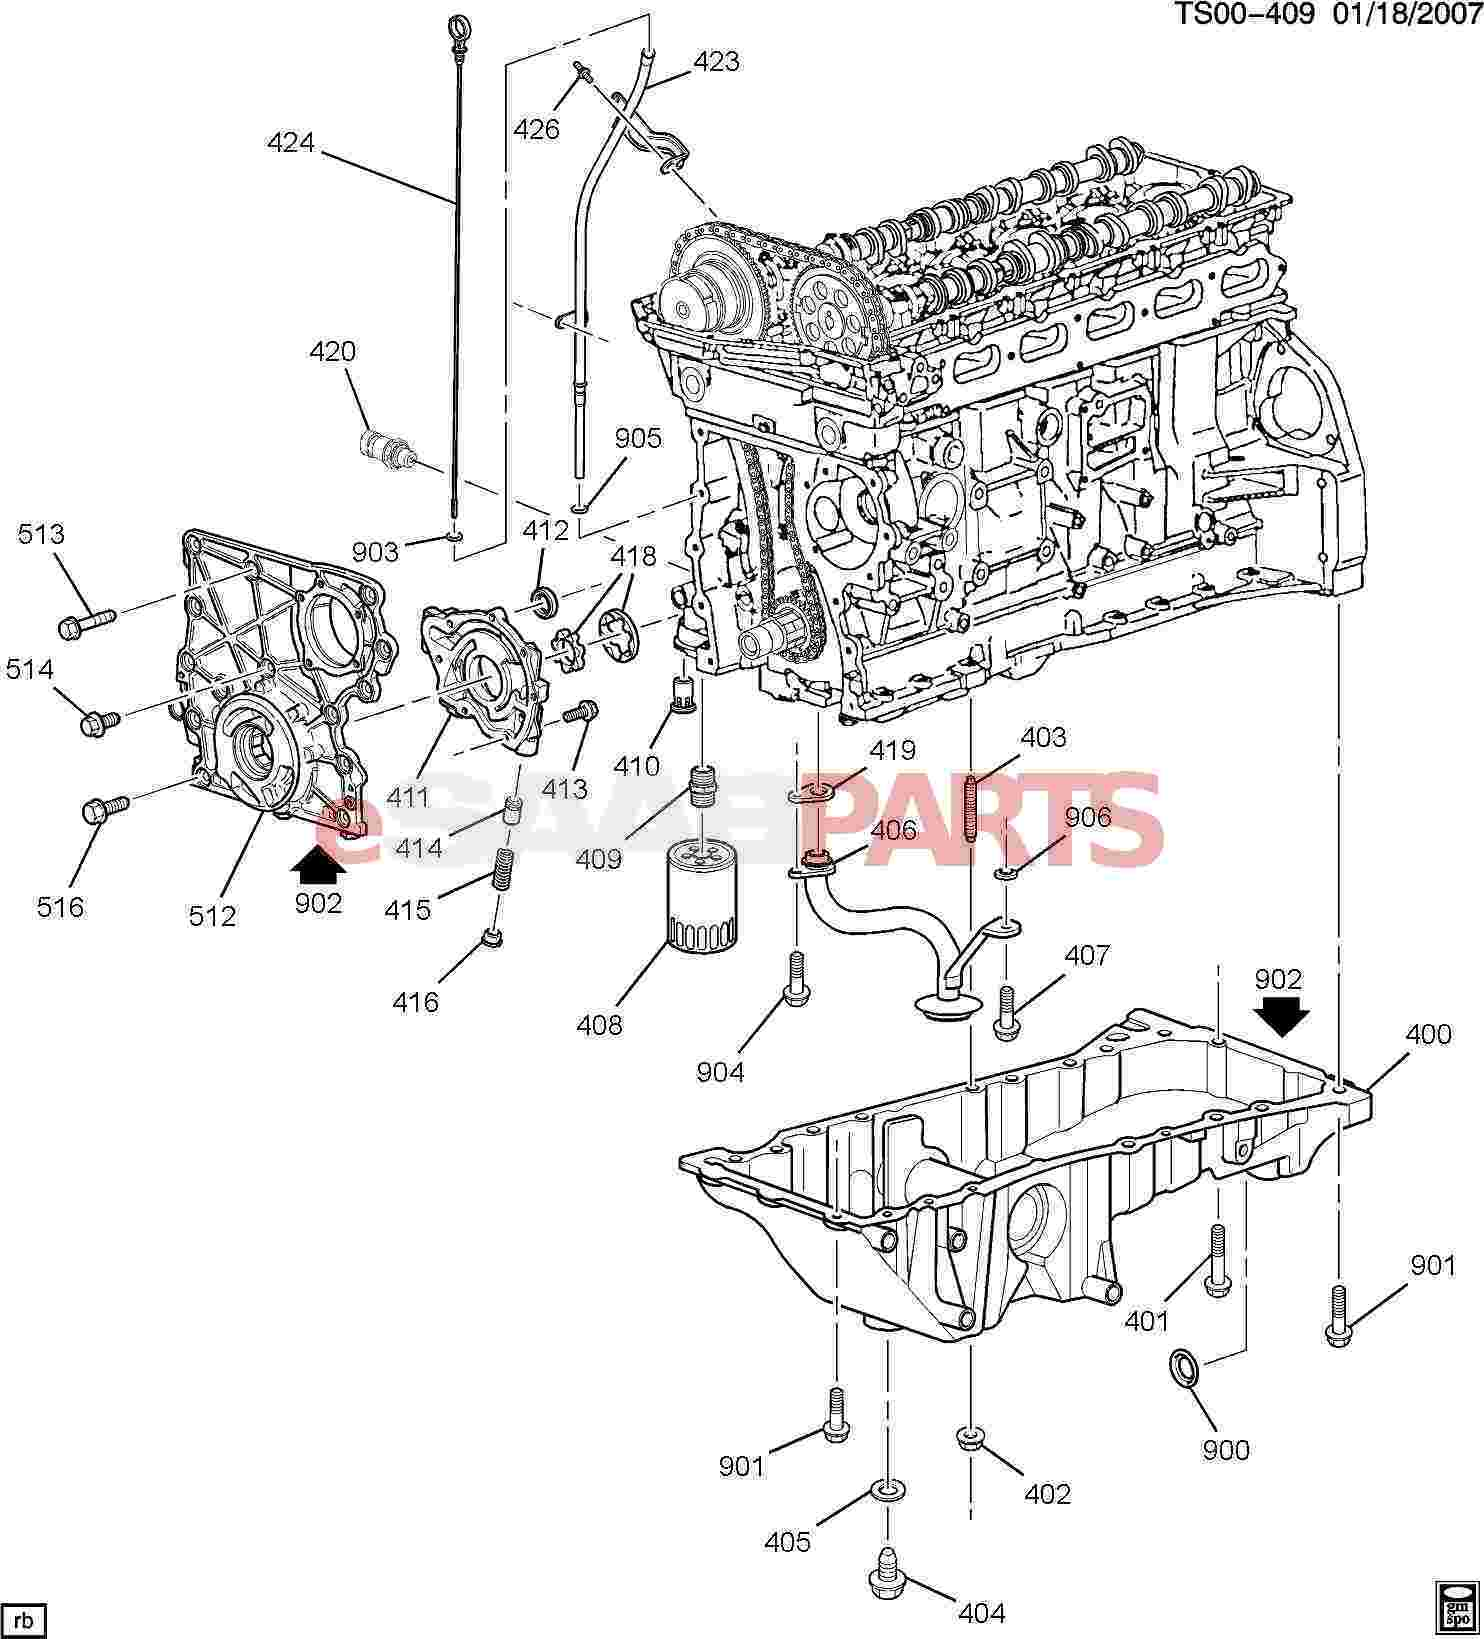 Diagram Mercedes Benz Engine Diagram 2004 Chevy Trailblazer ... on